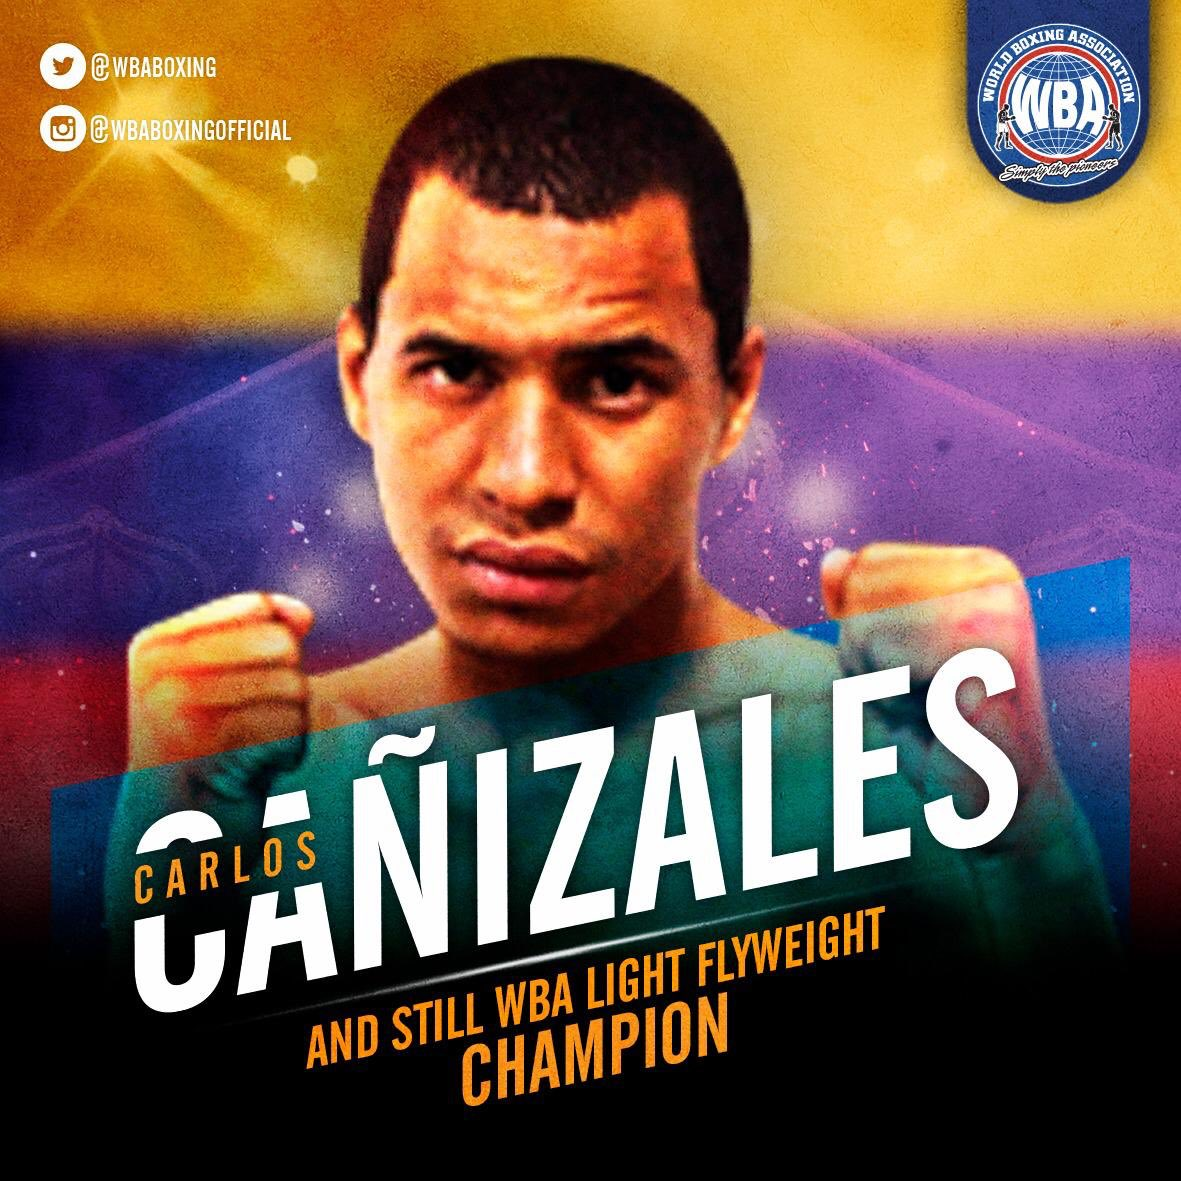 #AndStill WBA Light Flyweight Carlos Cañizales   Cañizales scores UD victory over Kimura  #WBAboxing